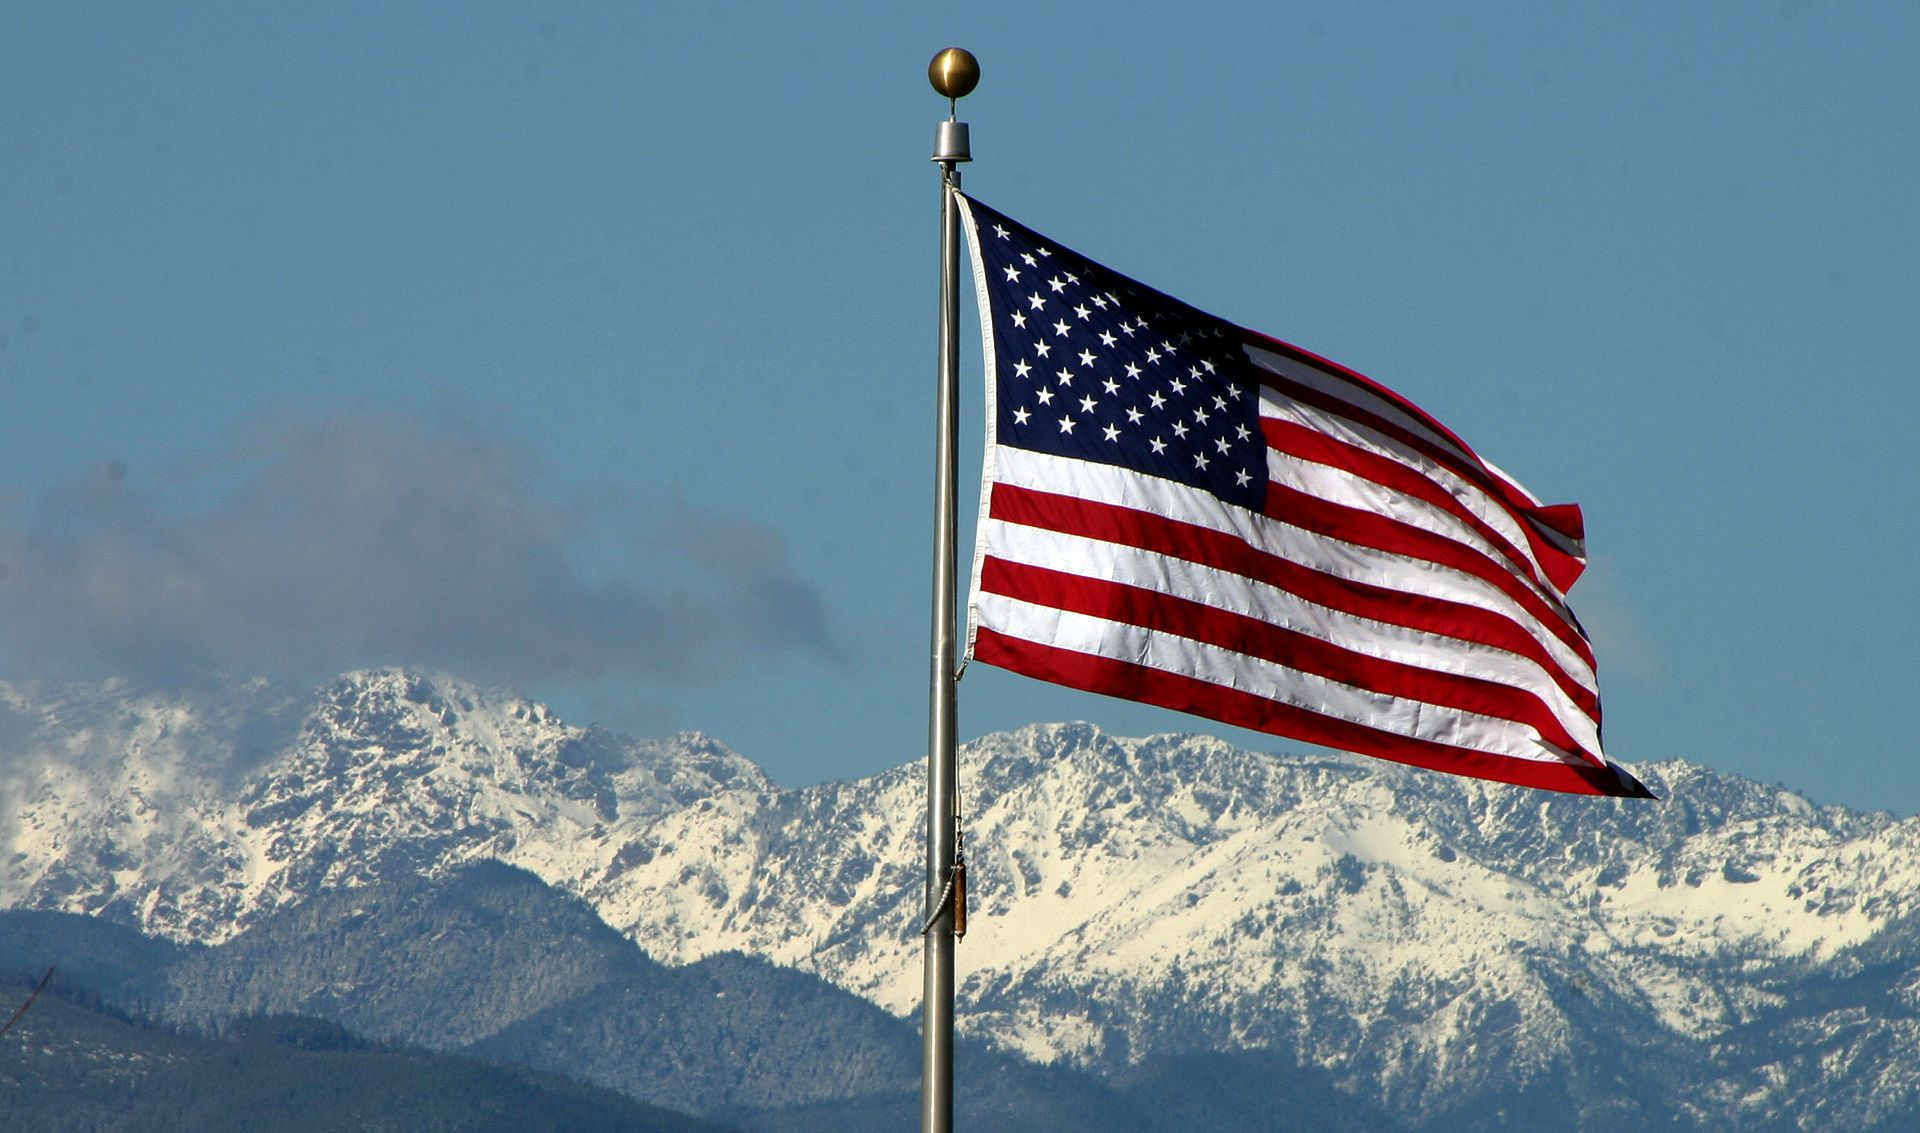 old glory images - Google Search